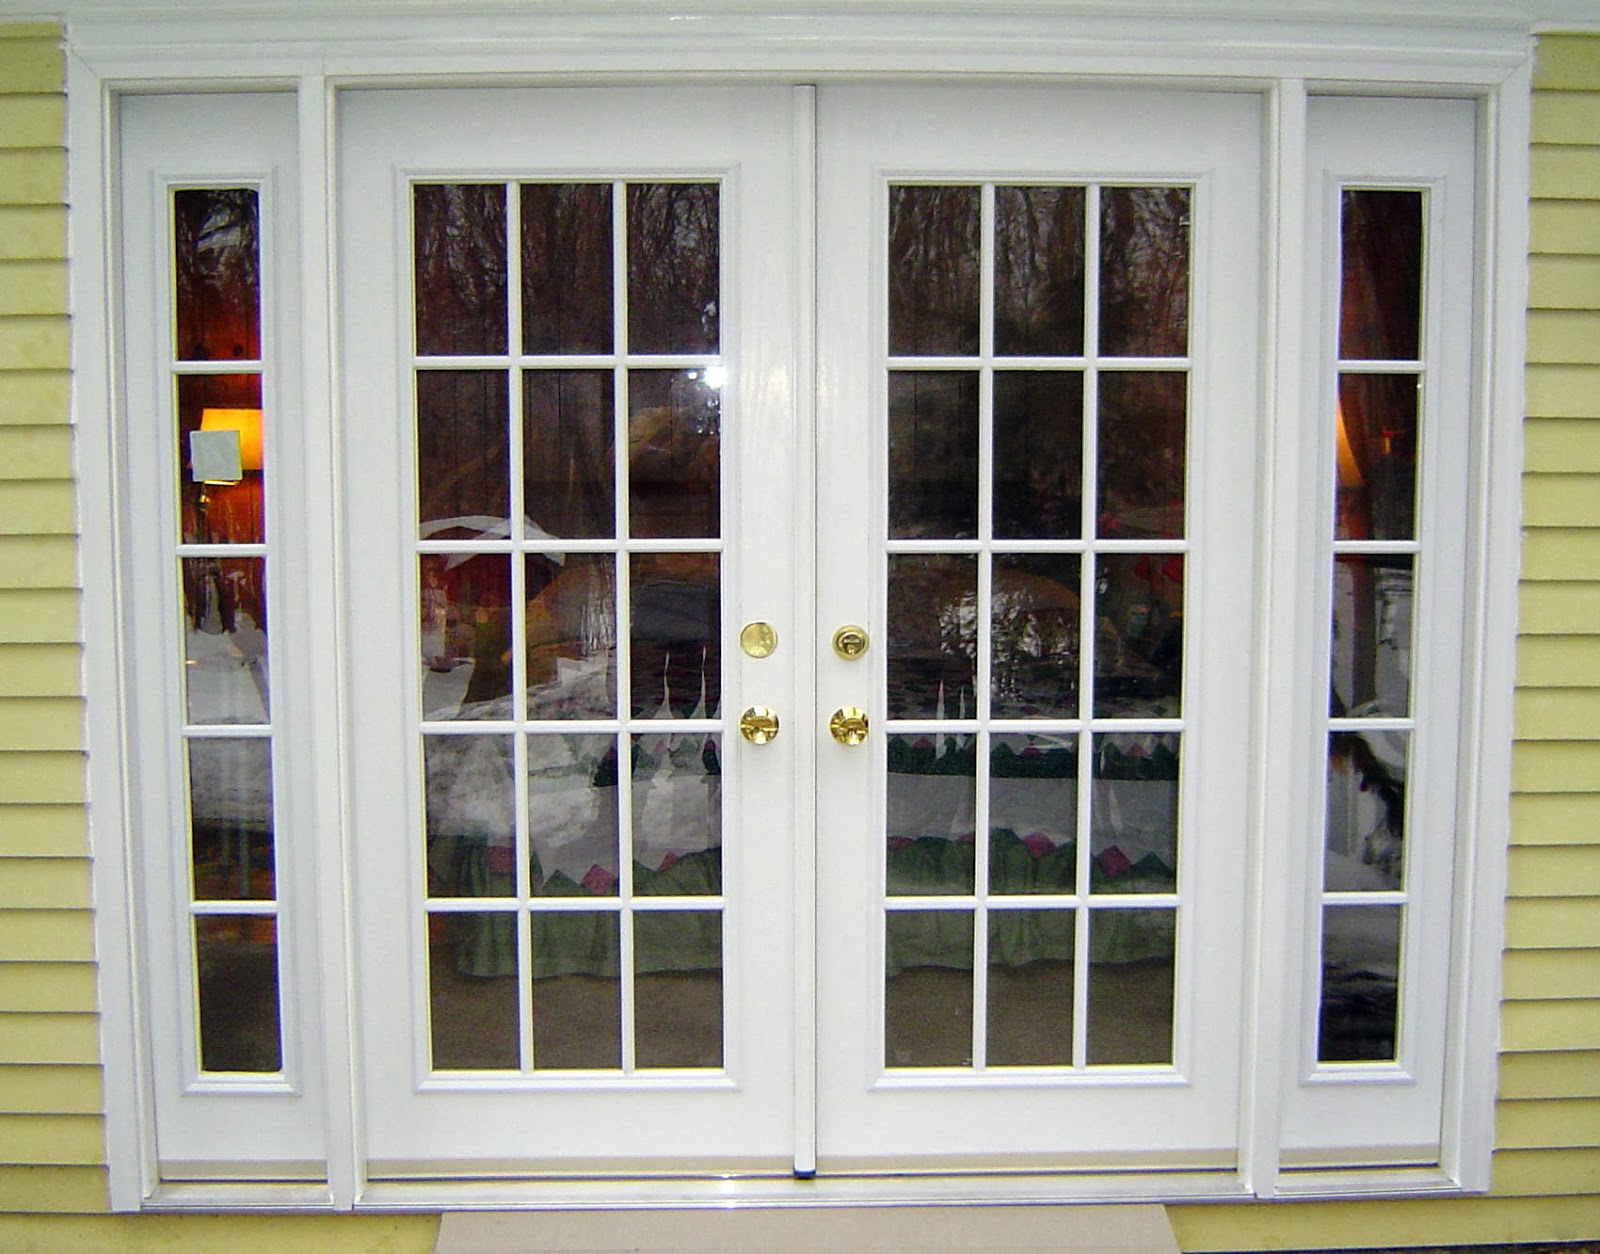 Fibreglass Door & Advantages Of Exterior Fiberglass doors : Pros Of Exterior ... pezcame.com